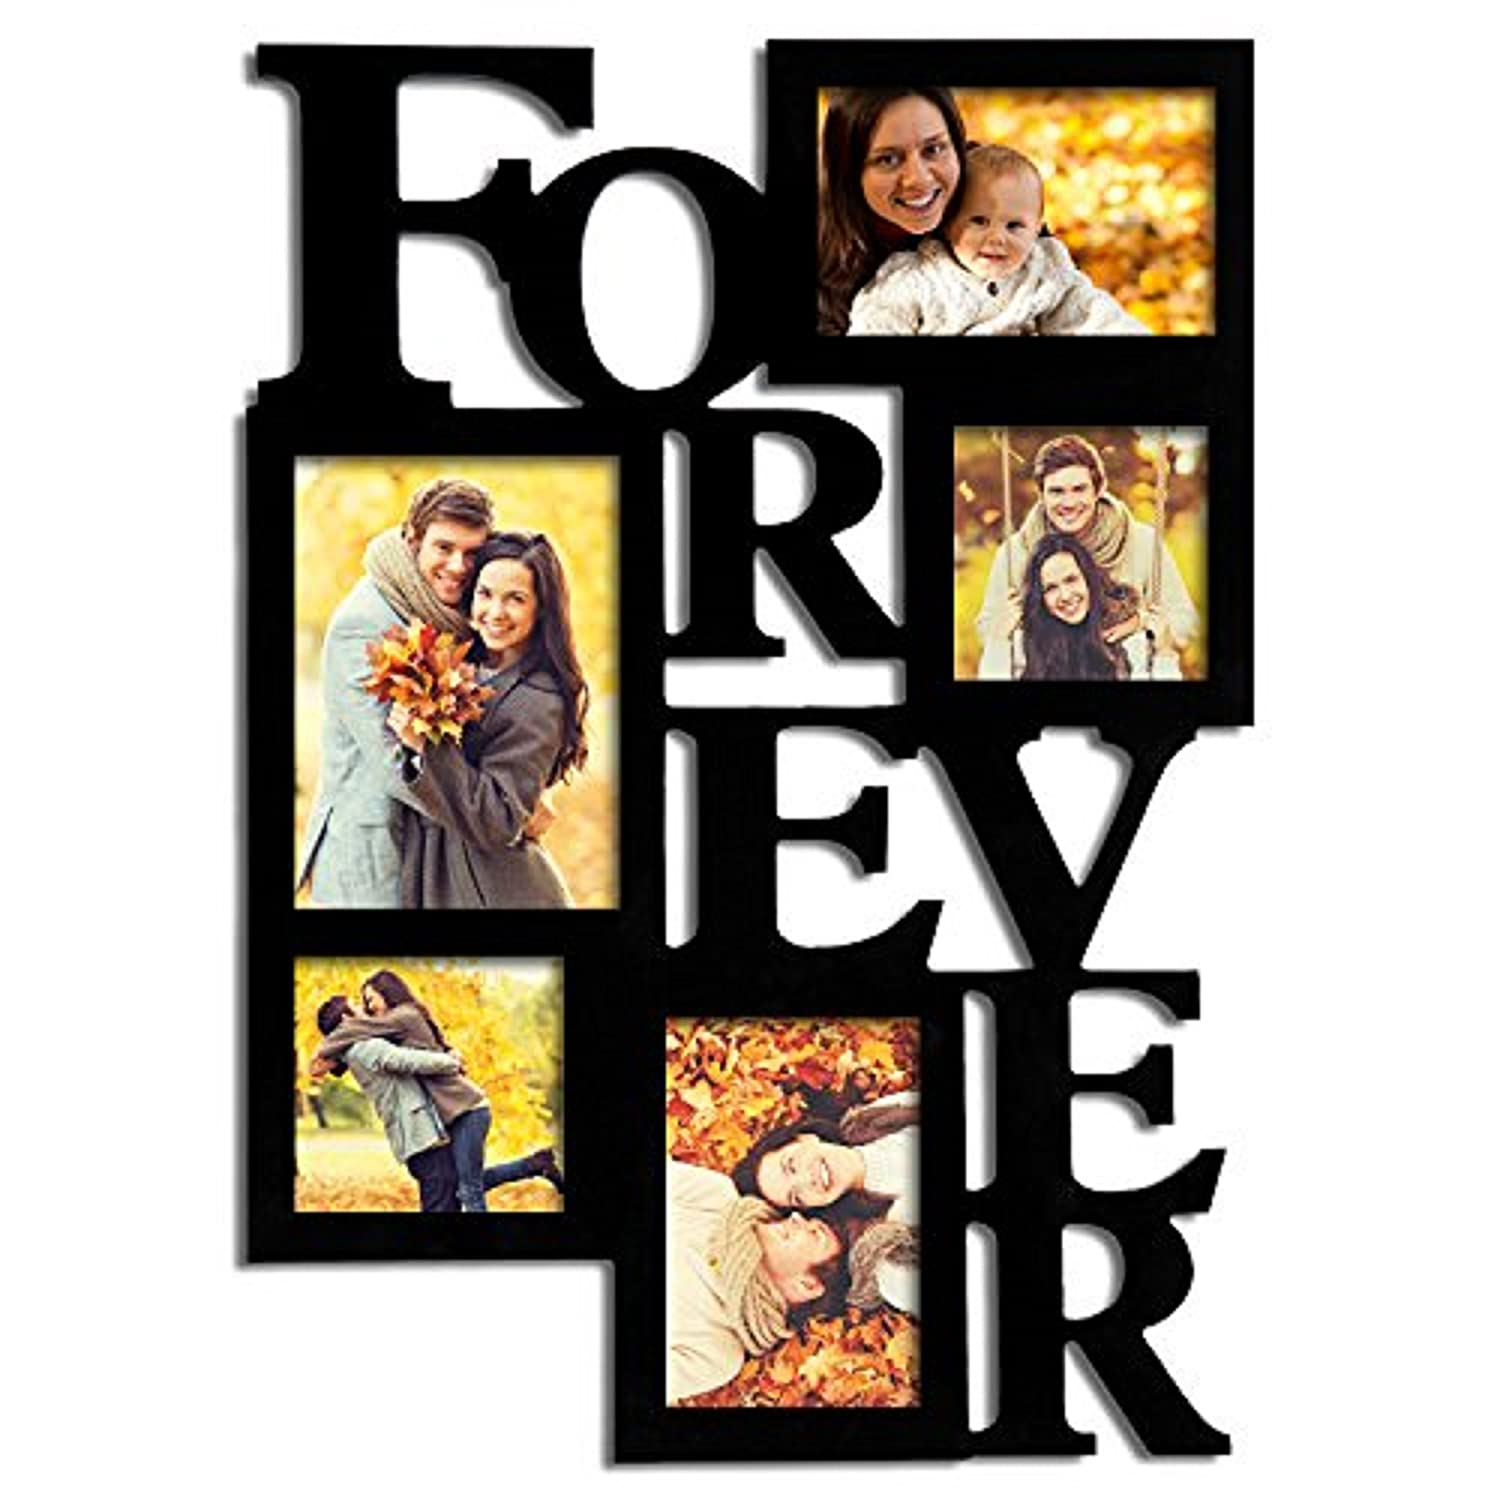 "Adeco 5-Opening Decorative Wood ""Forever"" Collage Wall Hanging Picture Frame, One 5 by 7-Inch/ Two 4 by 6-Inch/ Two 4 by 4-Inch, Black"